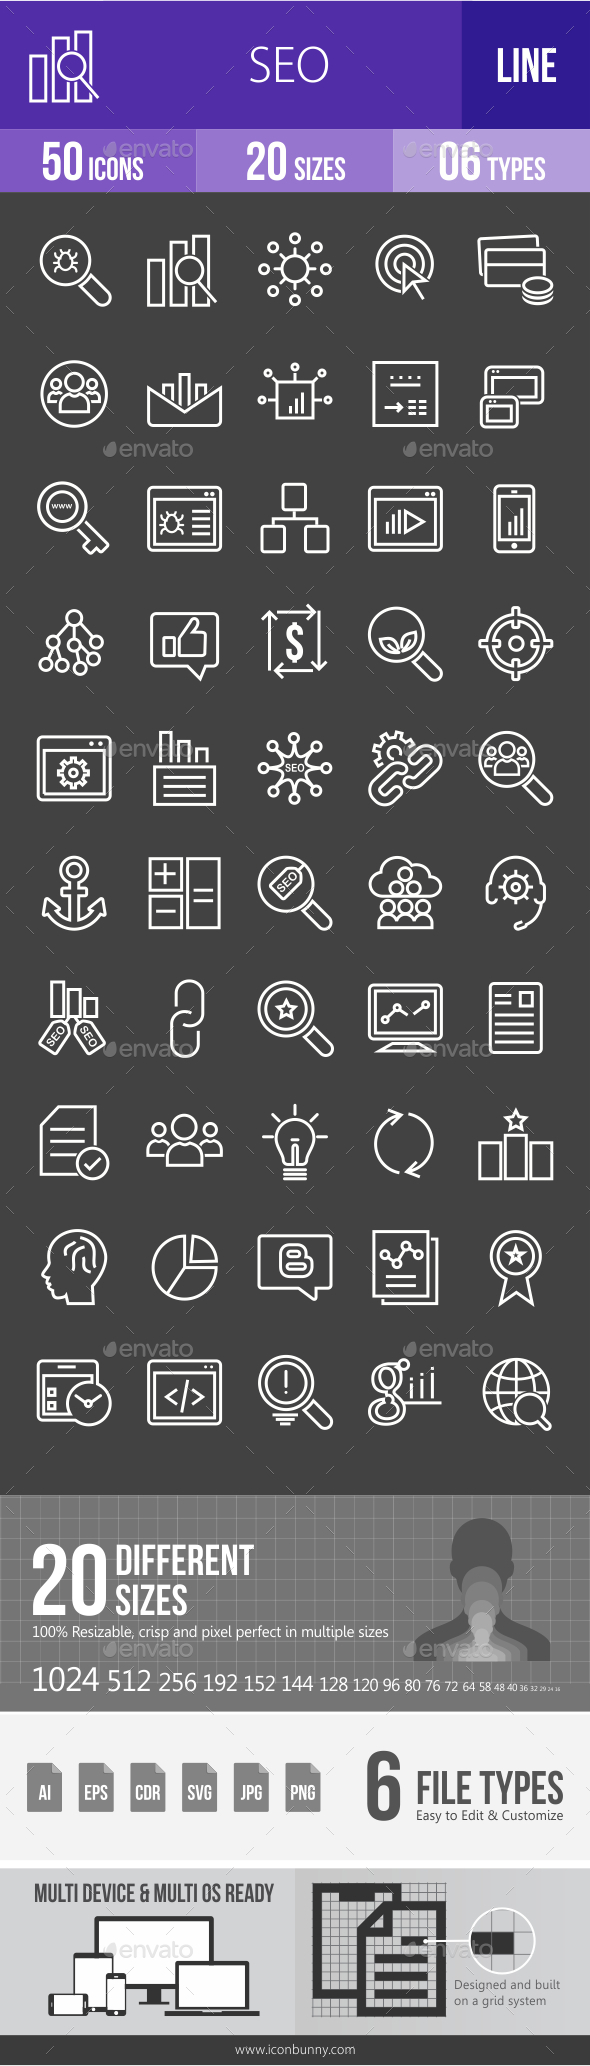 SEO Line Inverted Icons - Icons